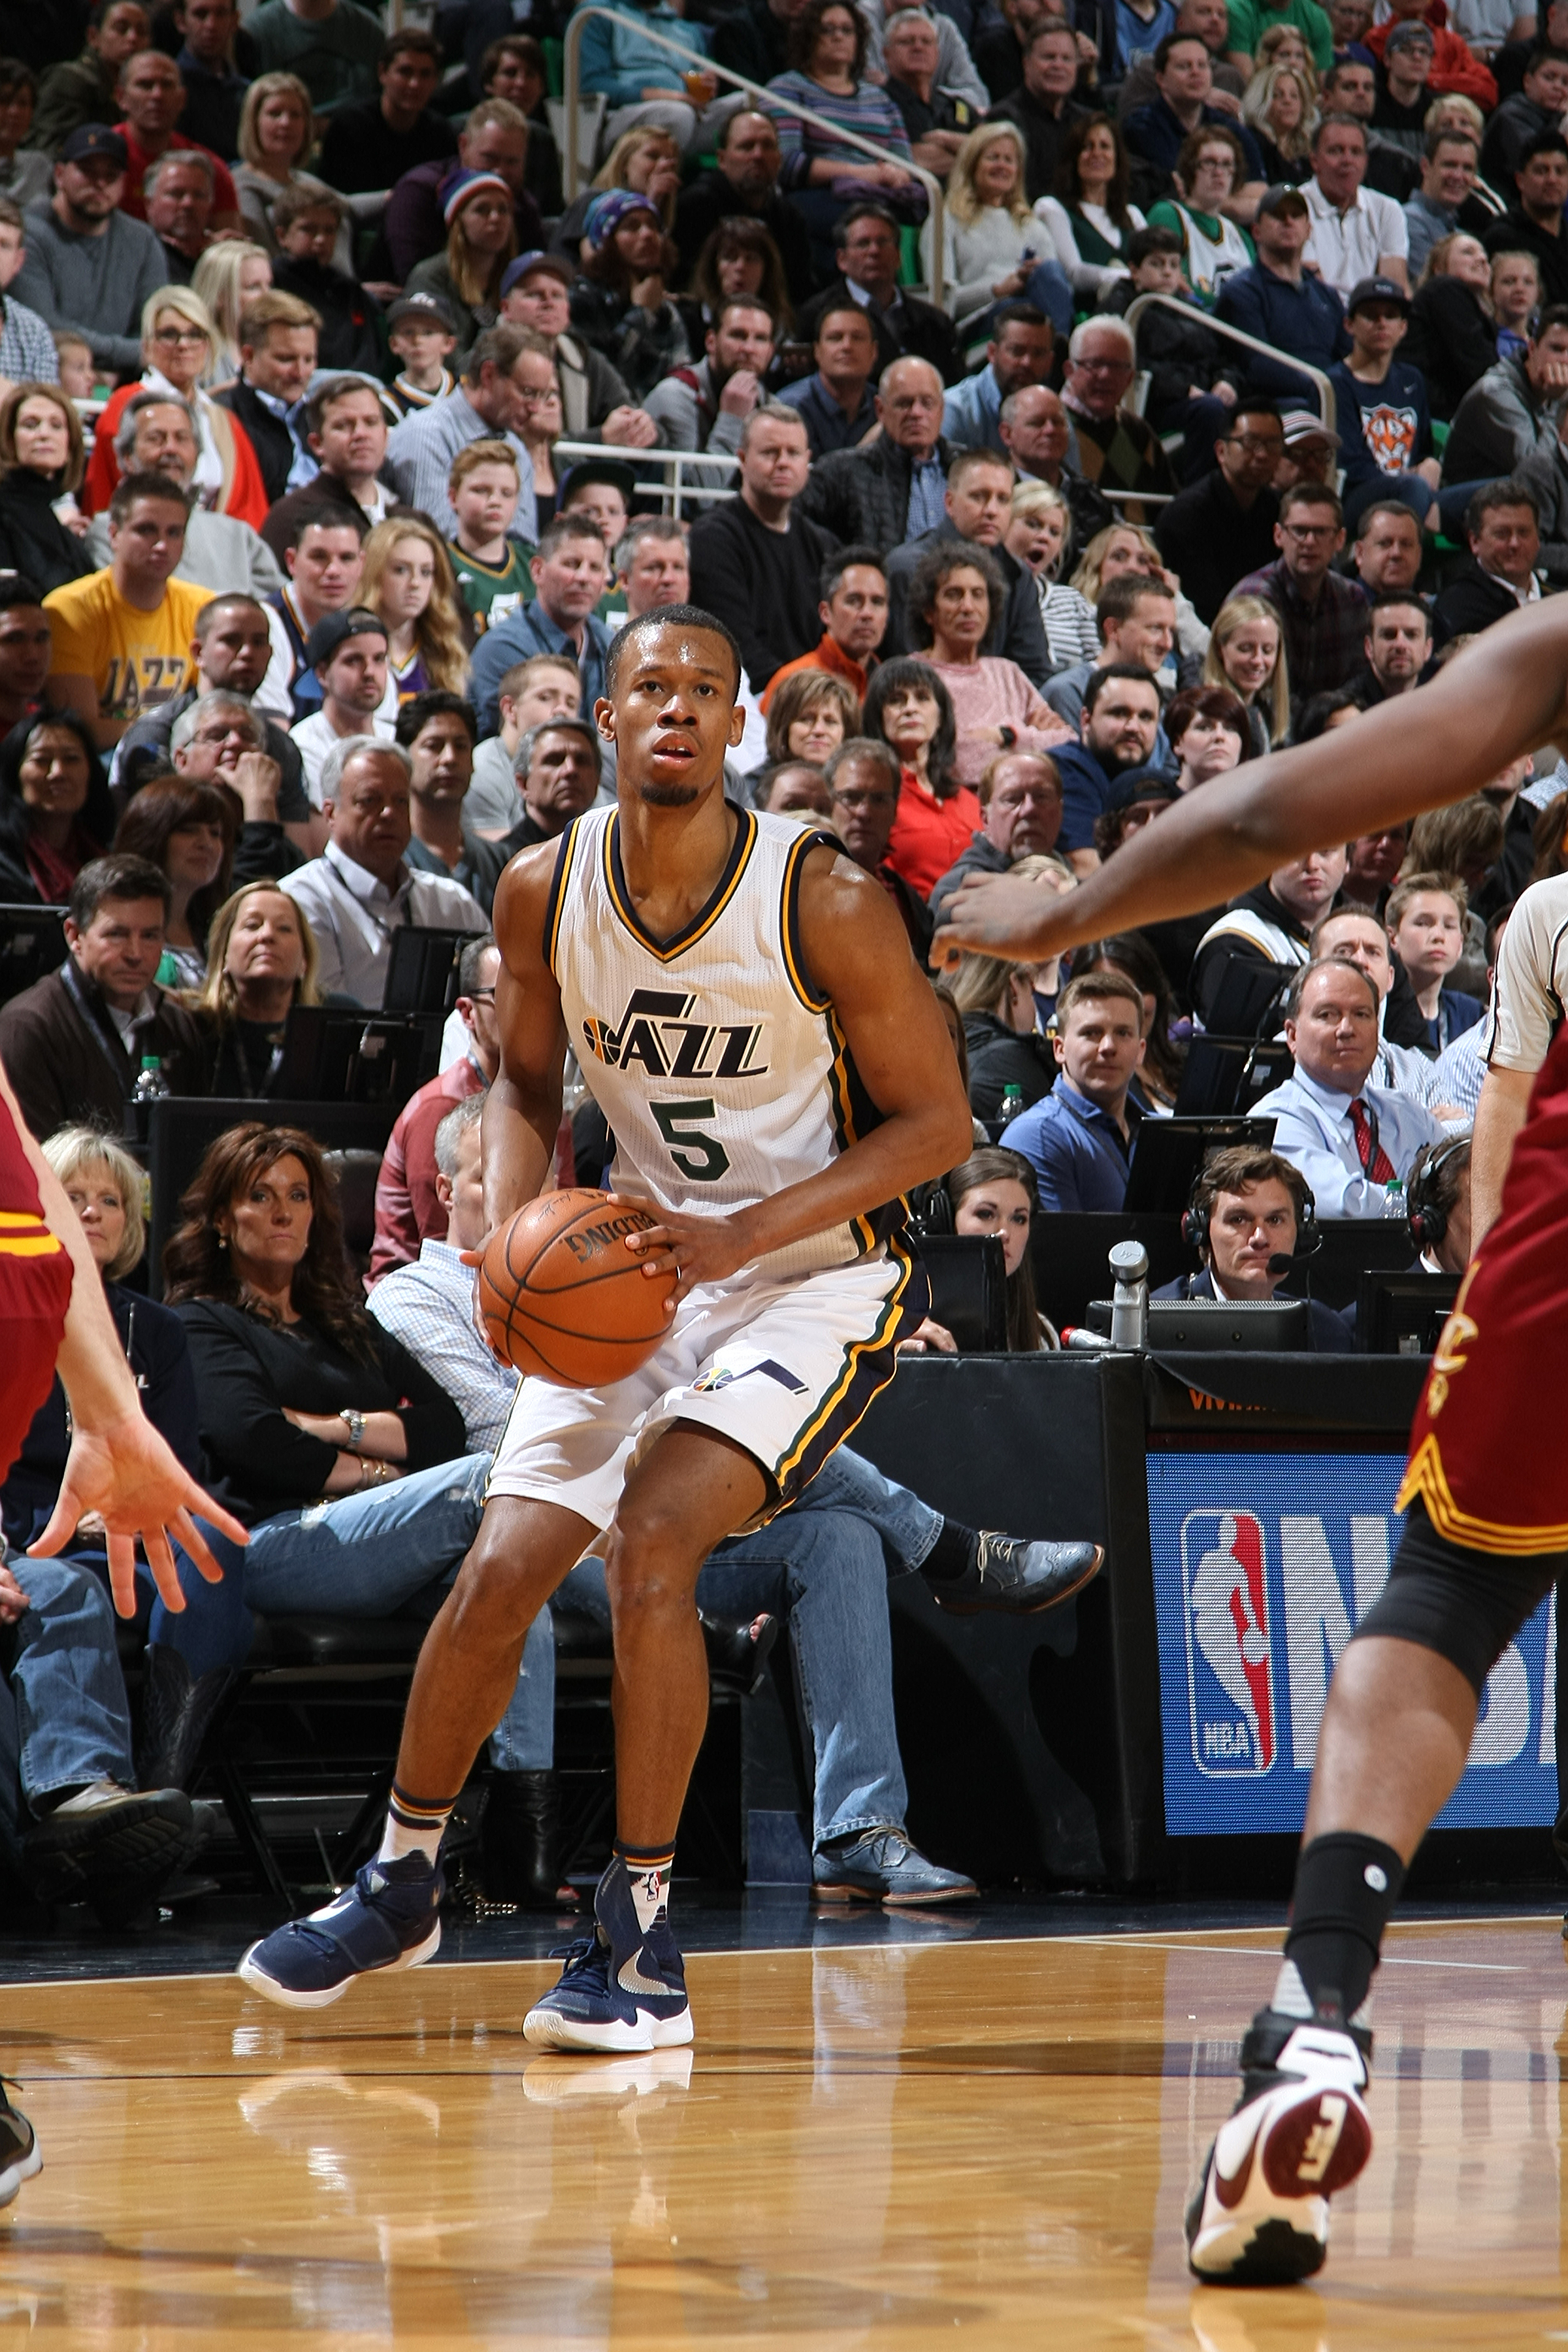 SALT LAKE CITY, UT - MARCH 14: Rodney Hood #5 of the Utah Jazz handles the ball against the Cleveland Cavaliers on March 14, 2016 at vivint.SmartHome Arena in Salt Lake City, Utah. (Photo by Melissa Majchrzak/NBAE via Getty Images)